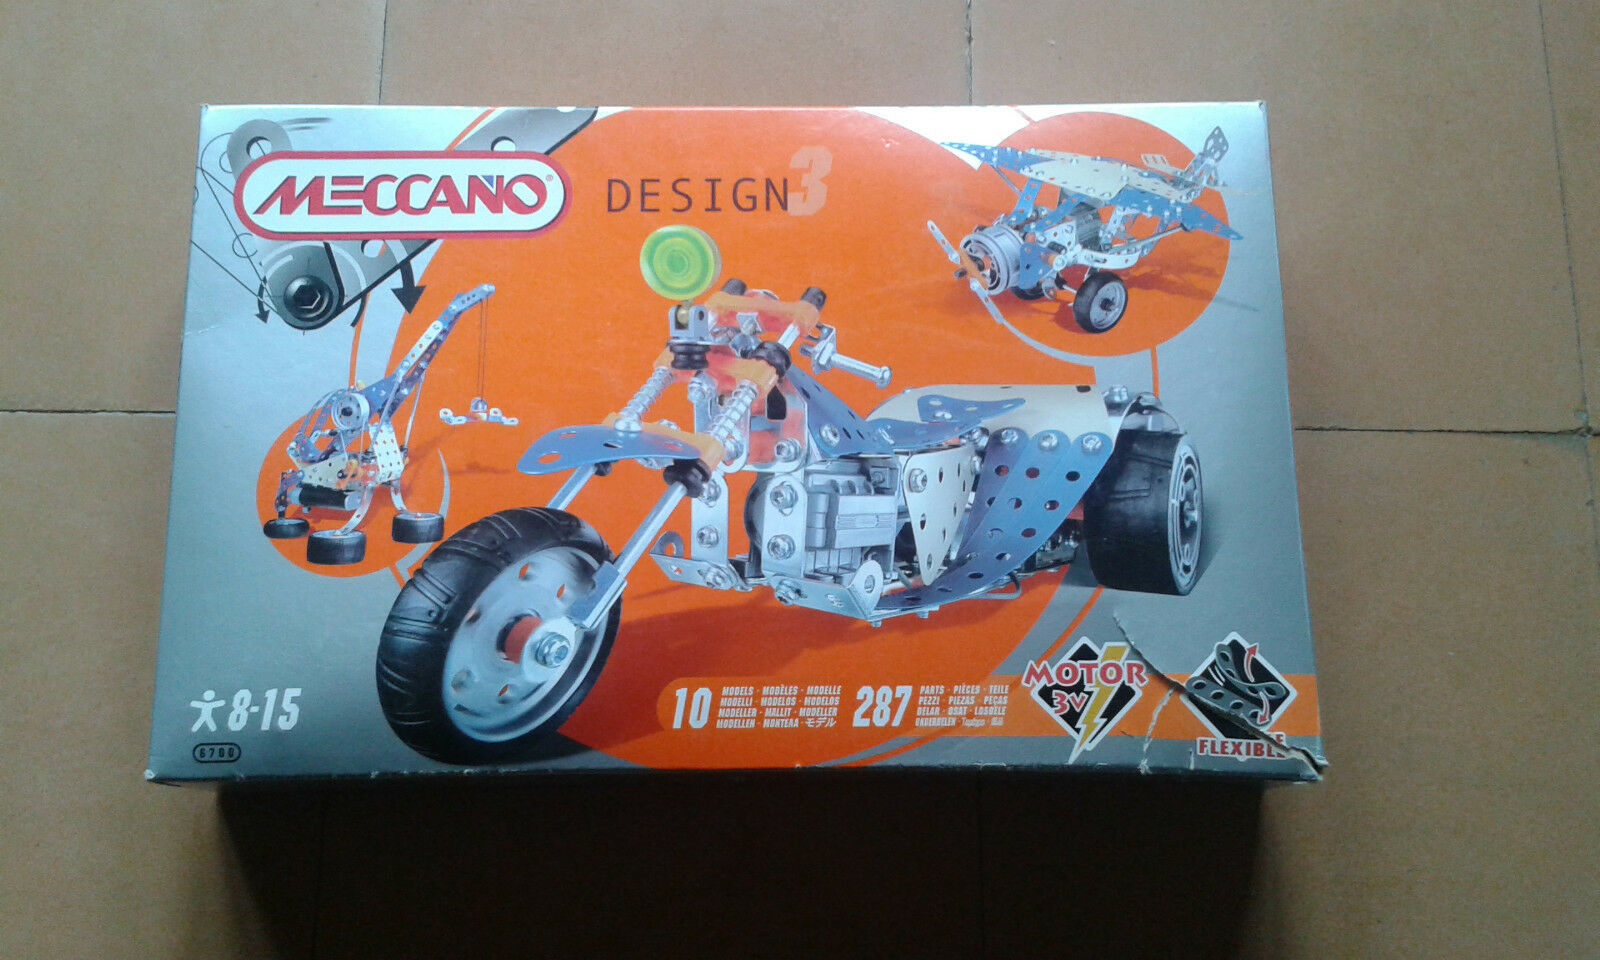 Used - MECCANO - DESING - Motor 3 v Item For Collectors